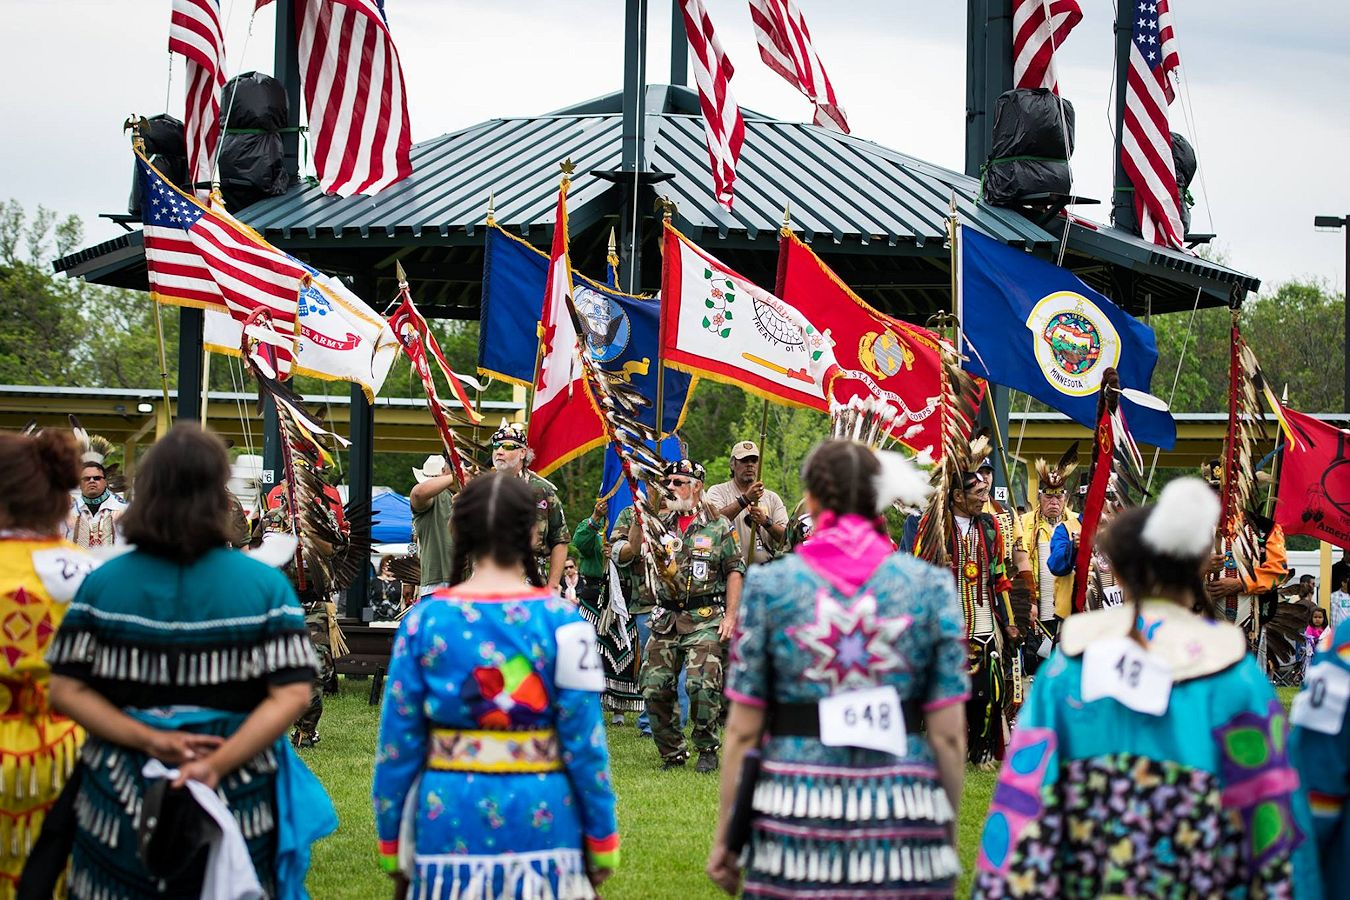 Minnesota Pow Wow Calendar 2021 2019 White Earth Pow Wow & Celebration | 151st Annual | White Earth MN